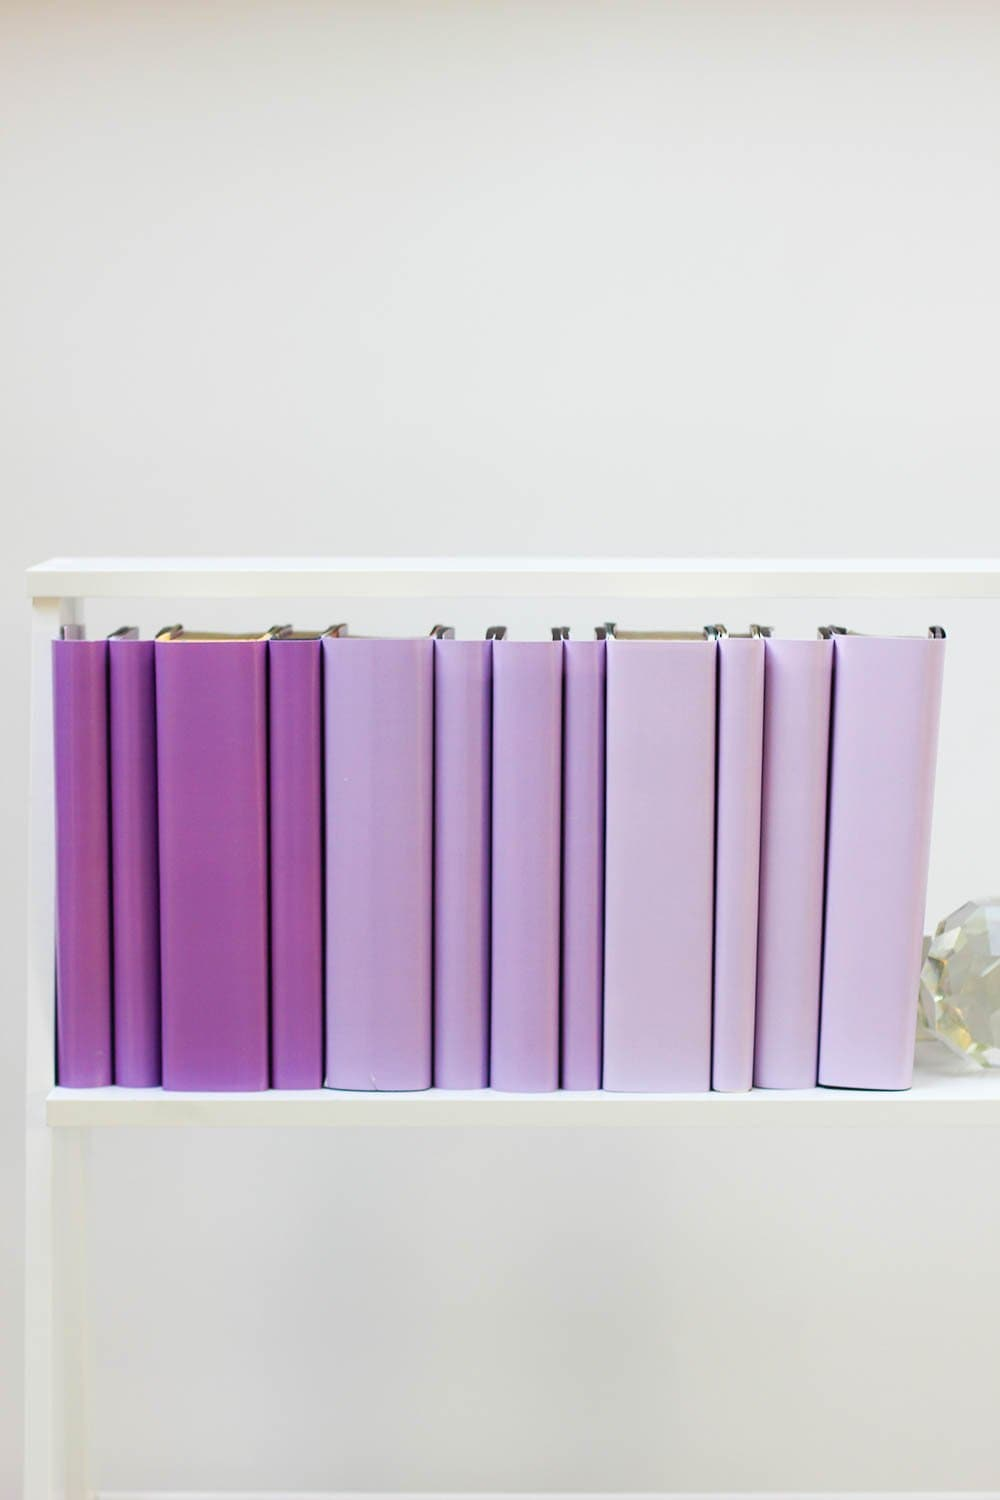 Set of styled purple books made with purple book covers